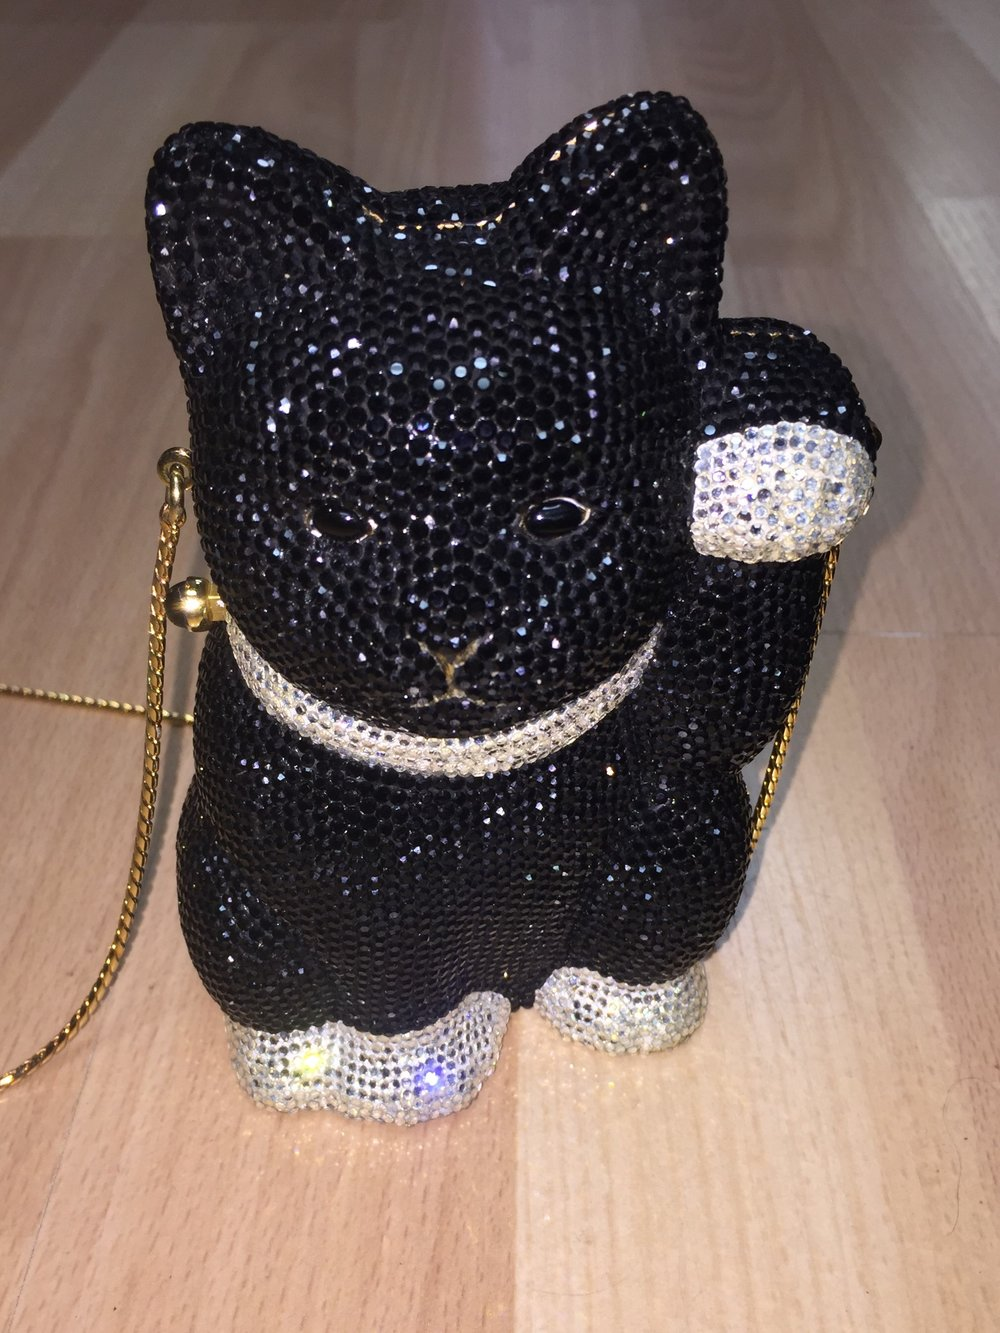 JUDITH LEIBER - Black and clear cat clutch, $1,650